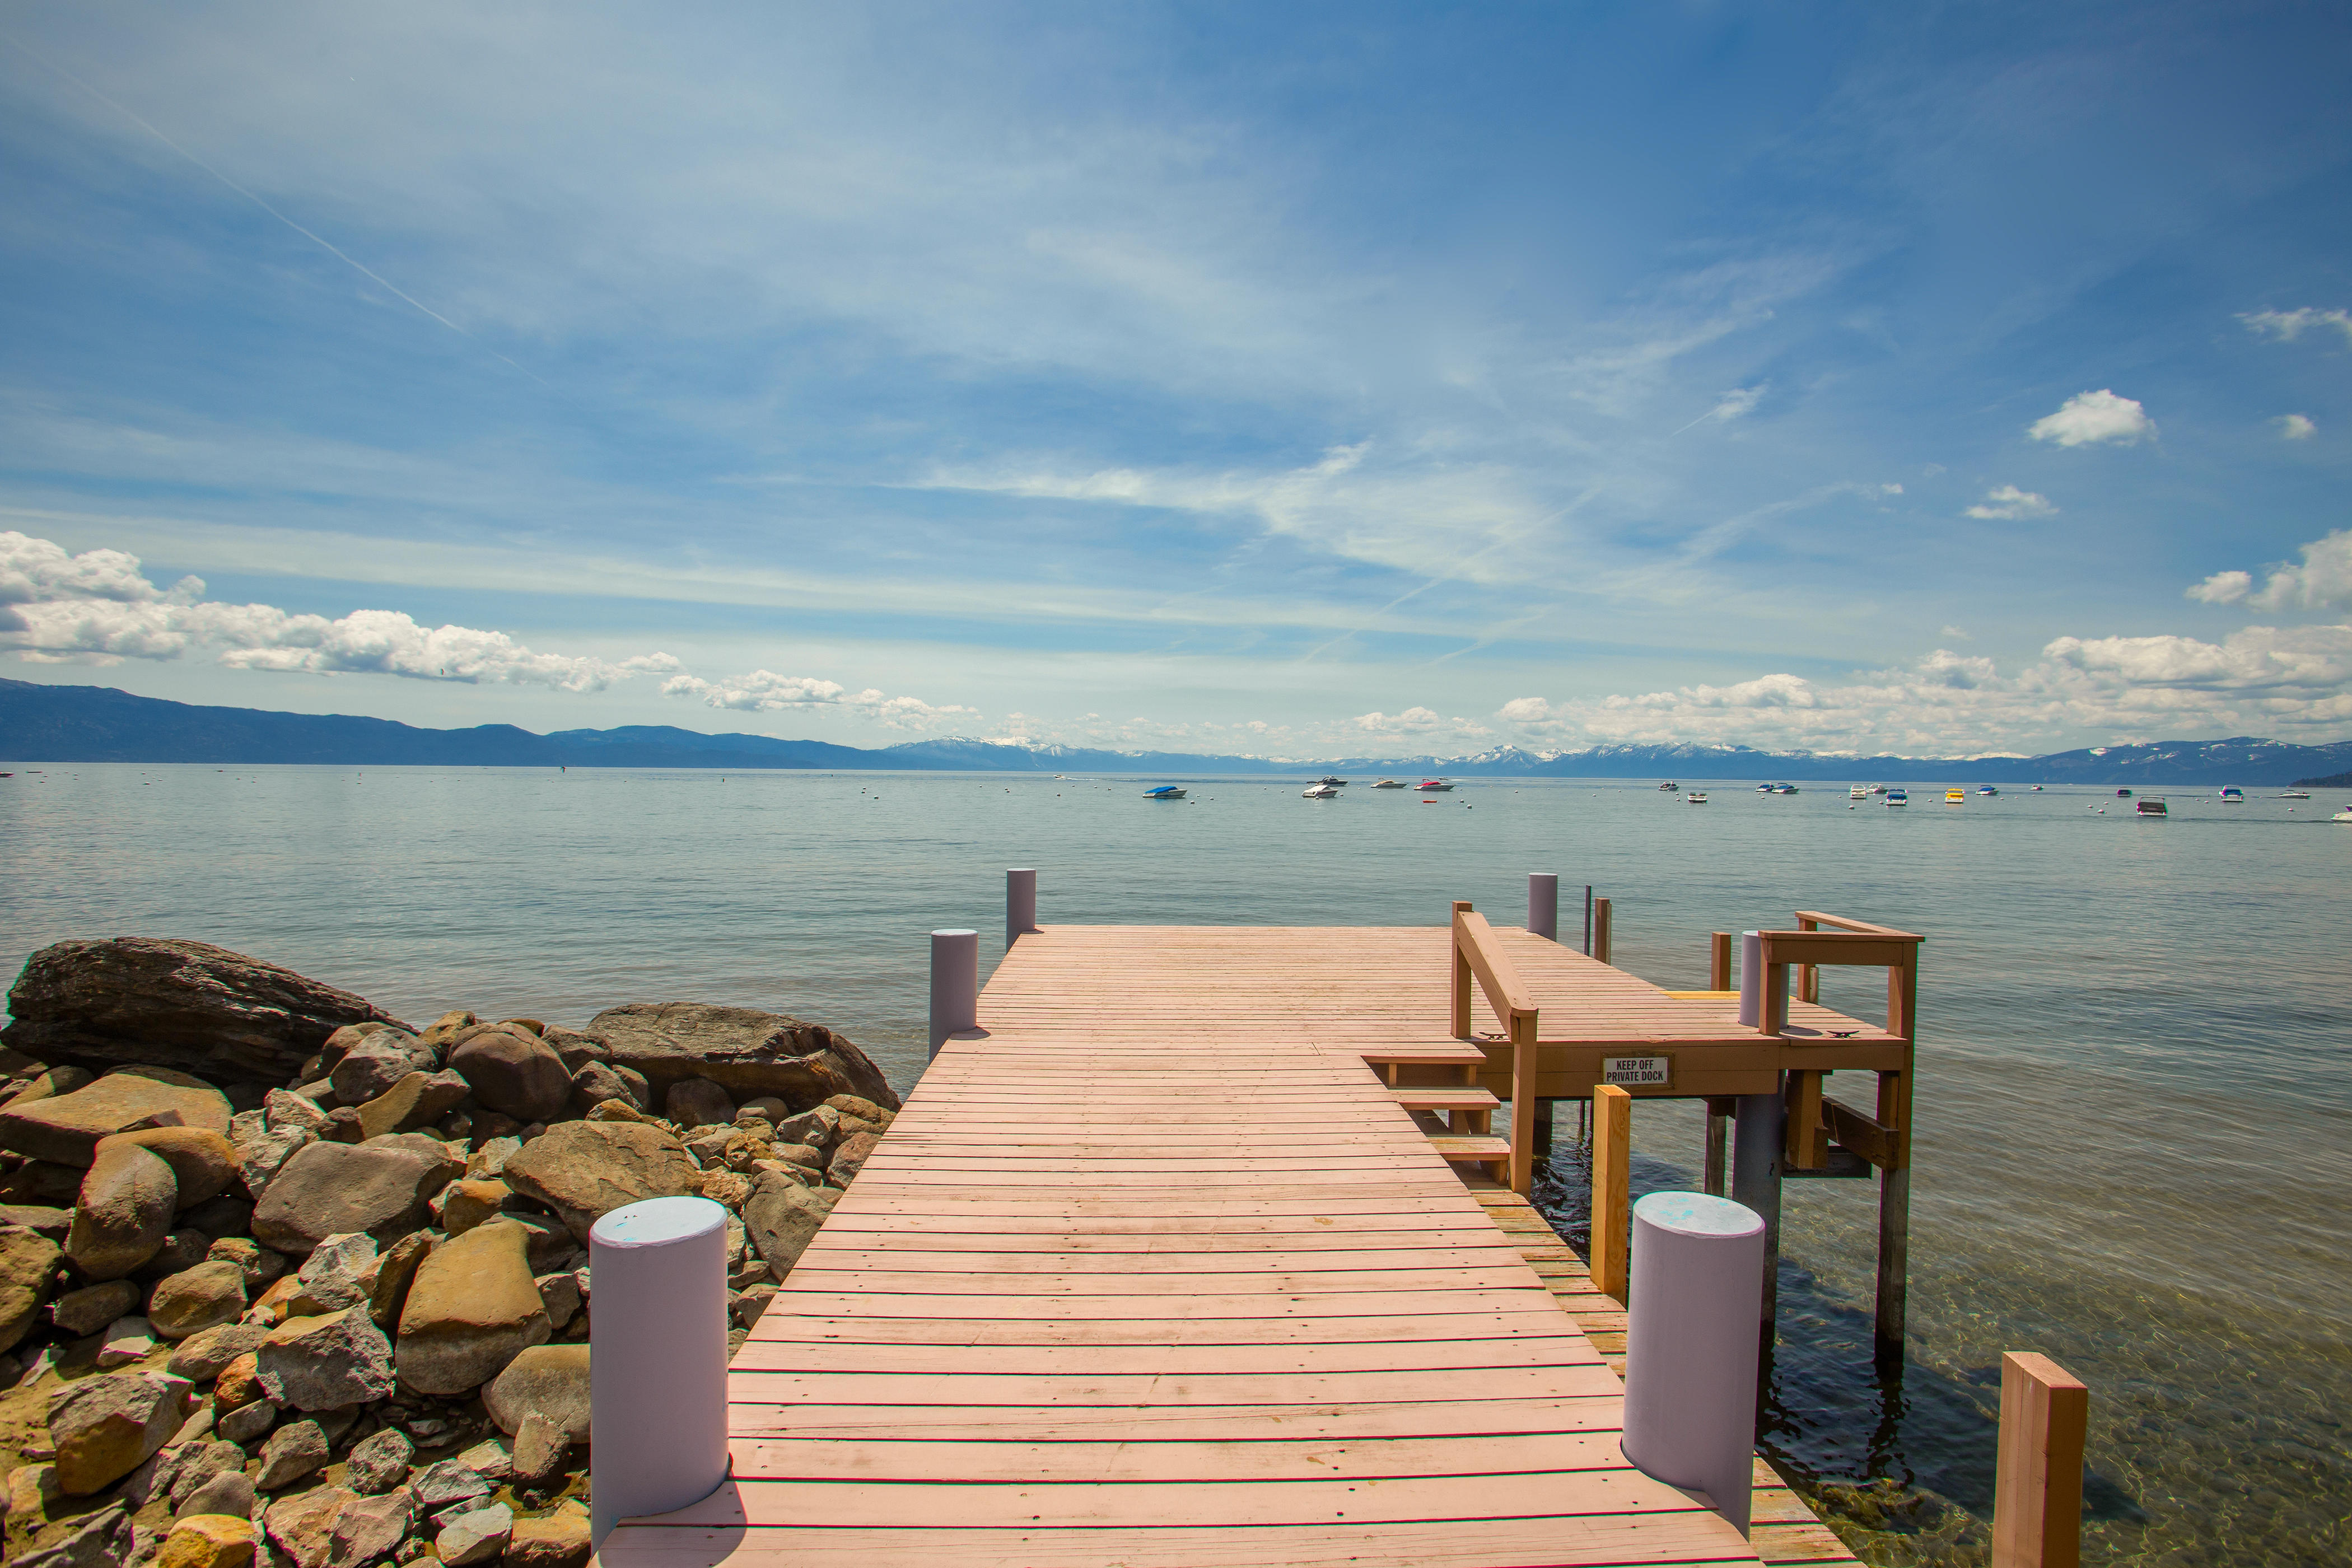 lakefront zephyr old lake rentals the tahoe rental water cove cabins cabin beachfront buoy on